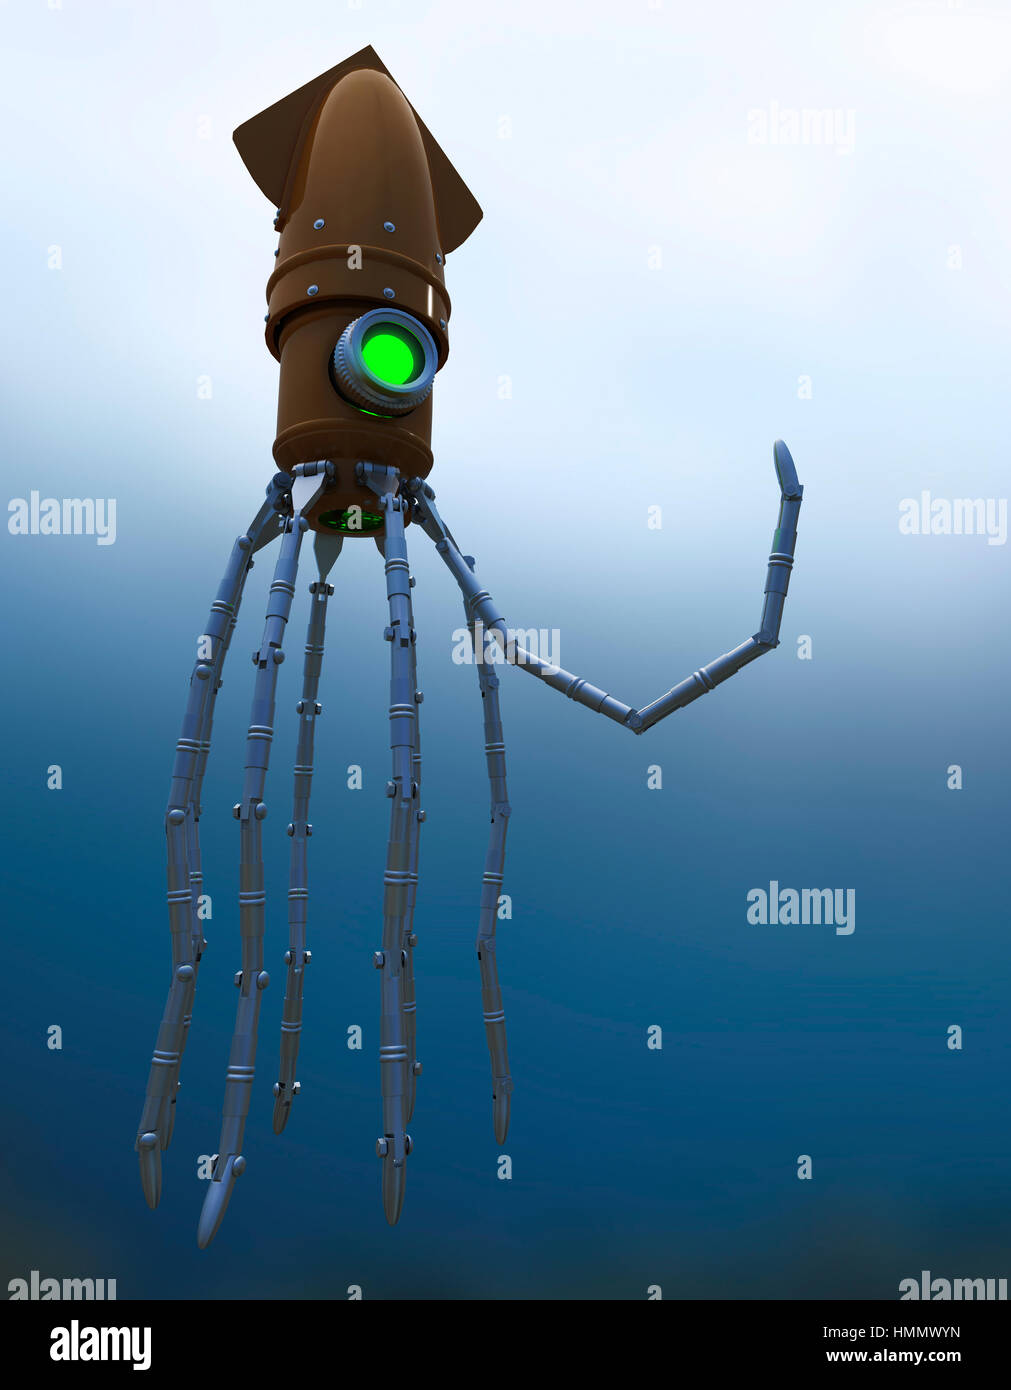 Steampunk Mechanical Squid Underwater with Glowing Lens - Stock Image